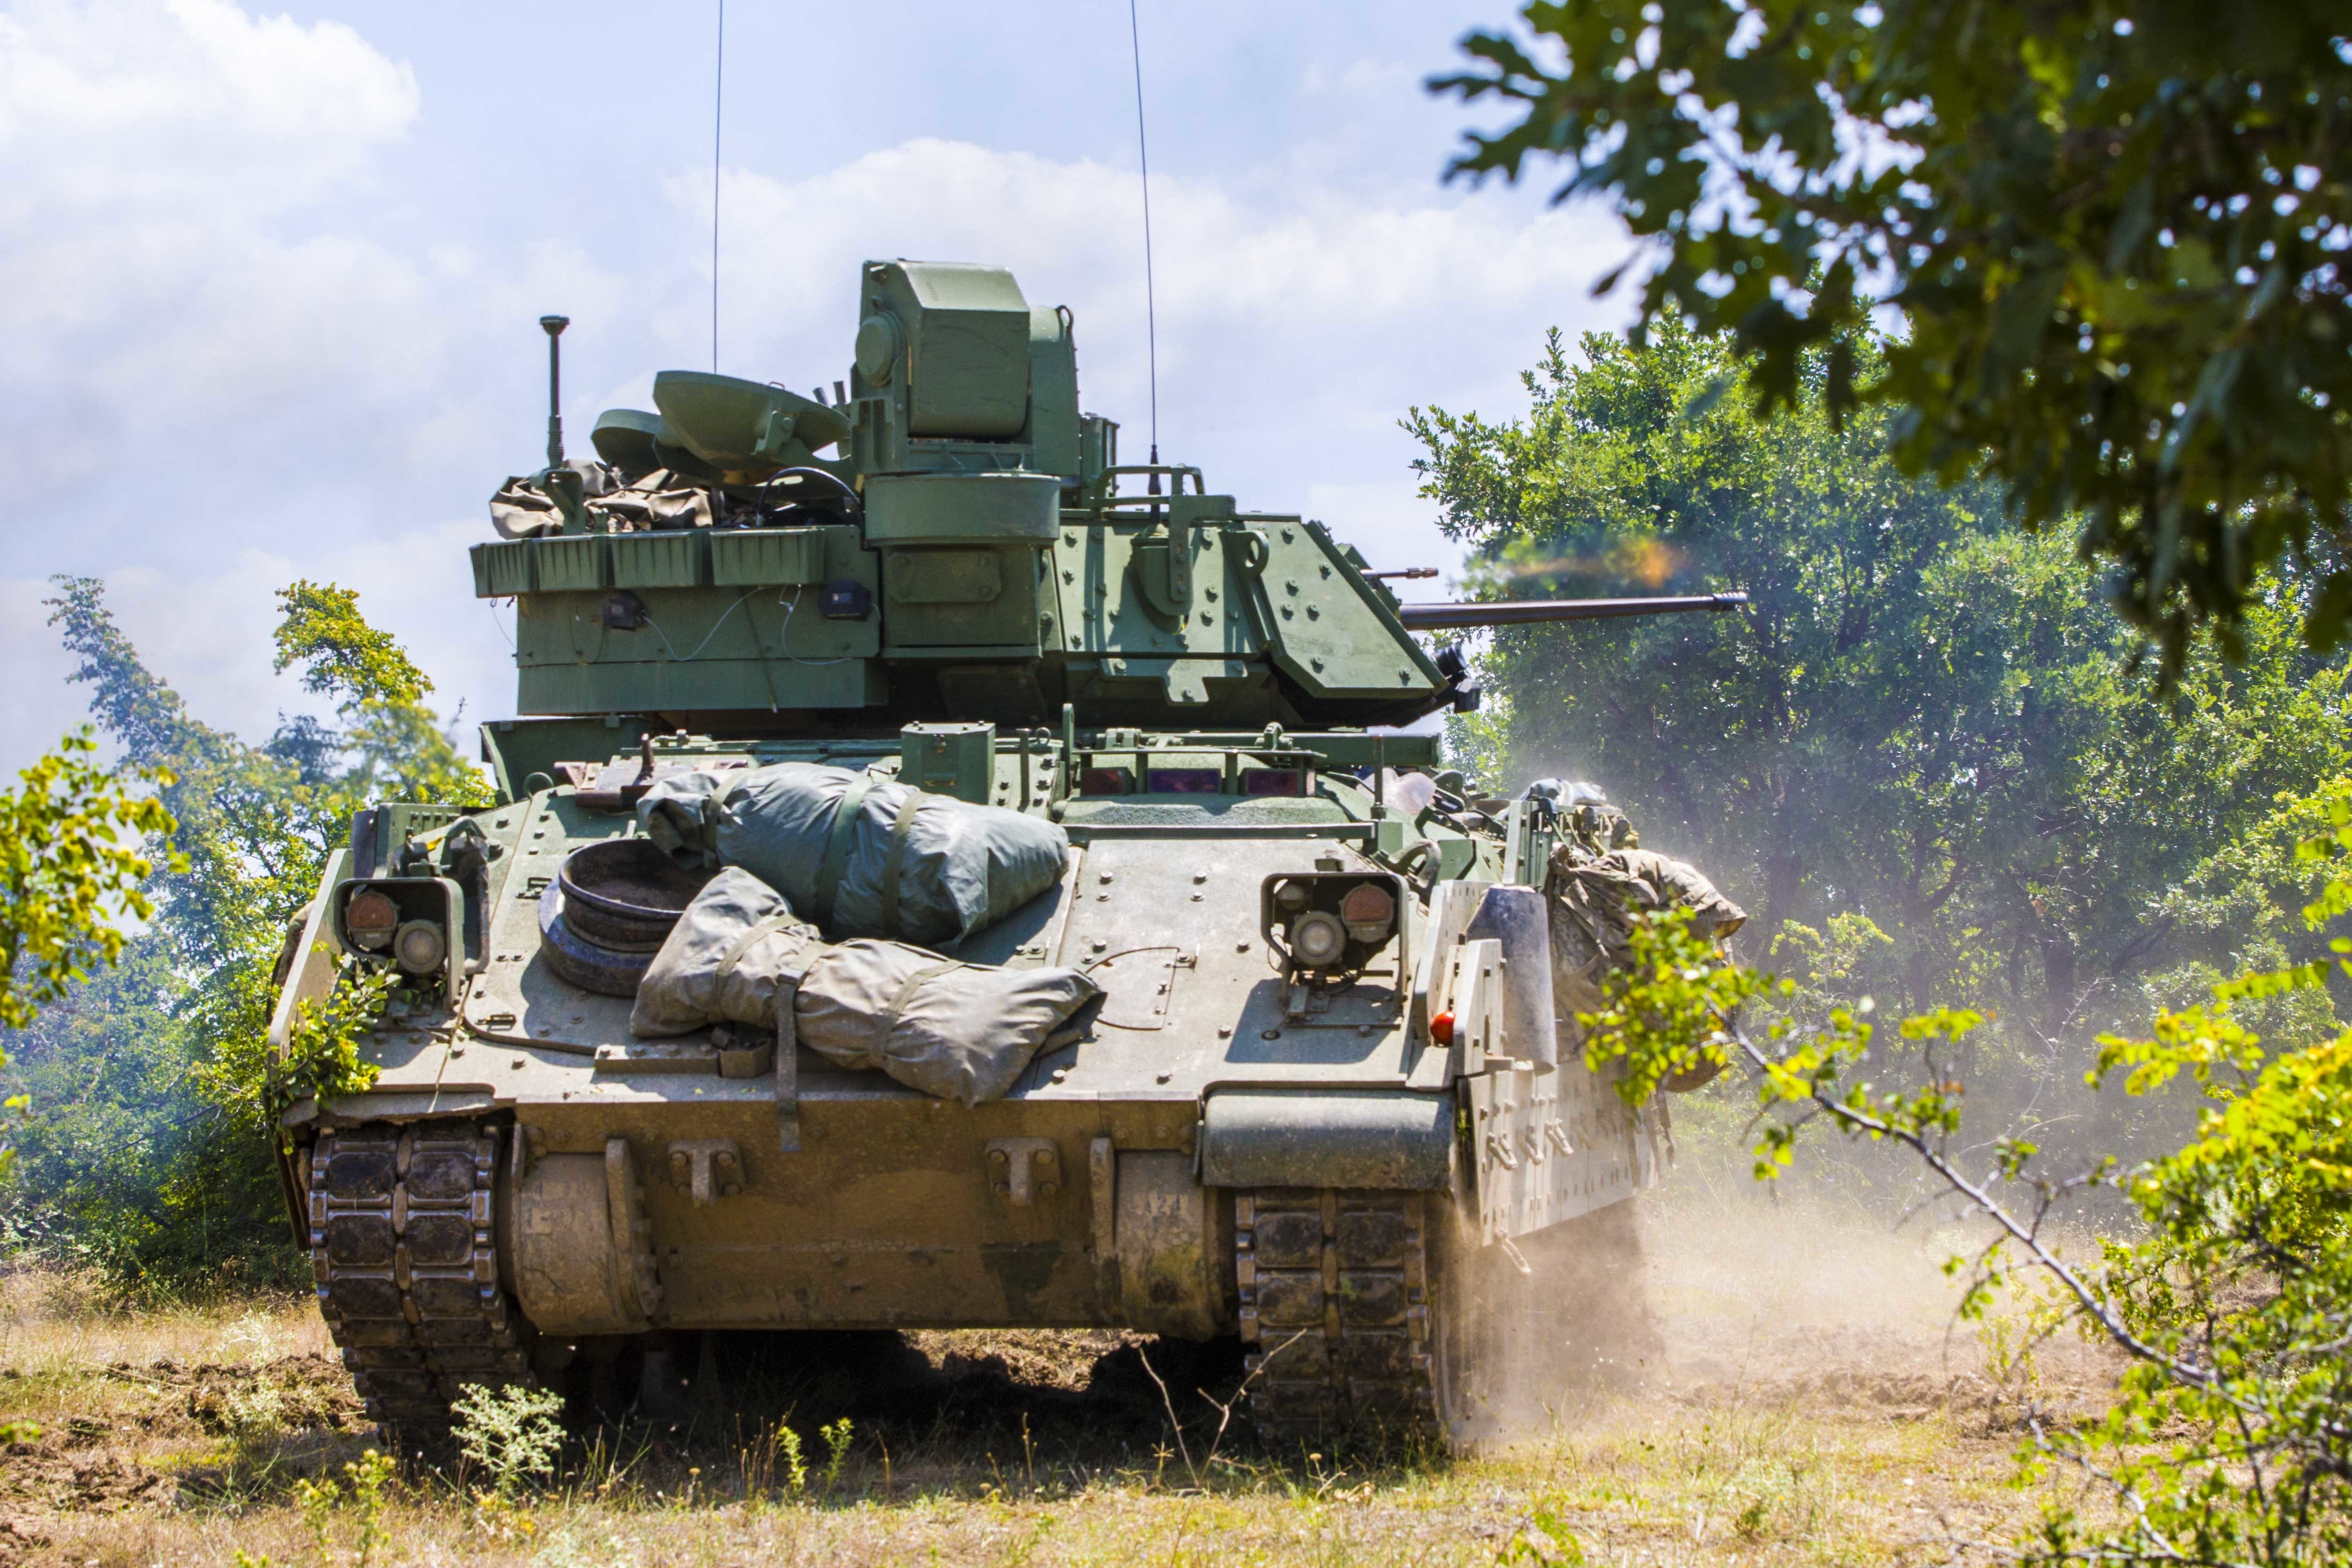 A Bradley Fighting Vehicle from 1st Battalion, 8th Infantry Regiment, 4th Infantry Division, fires on enemy forces during a combined live fire exercise titled Peace Sentinel at Koren, Bulgaria, on July 19. Exercise Saber Guardian 17 is a U.S. European Command, U.S. Army Europe-led exercise in the Black Sea Region that builds readiness and improves interoperability among the 20 Allies who participate. (U.S. Army photo by Spc. Thomas Scaggs) 170717-A-TZ475-446